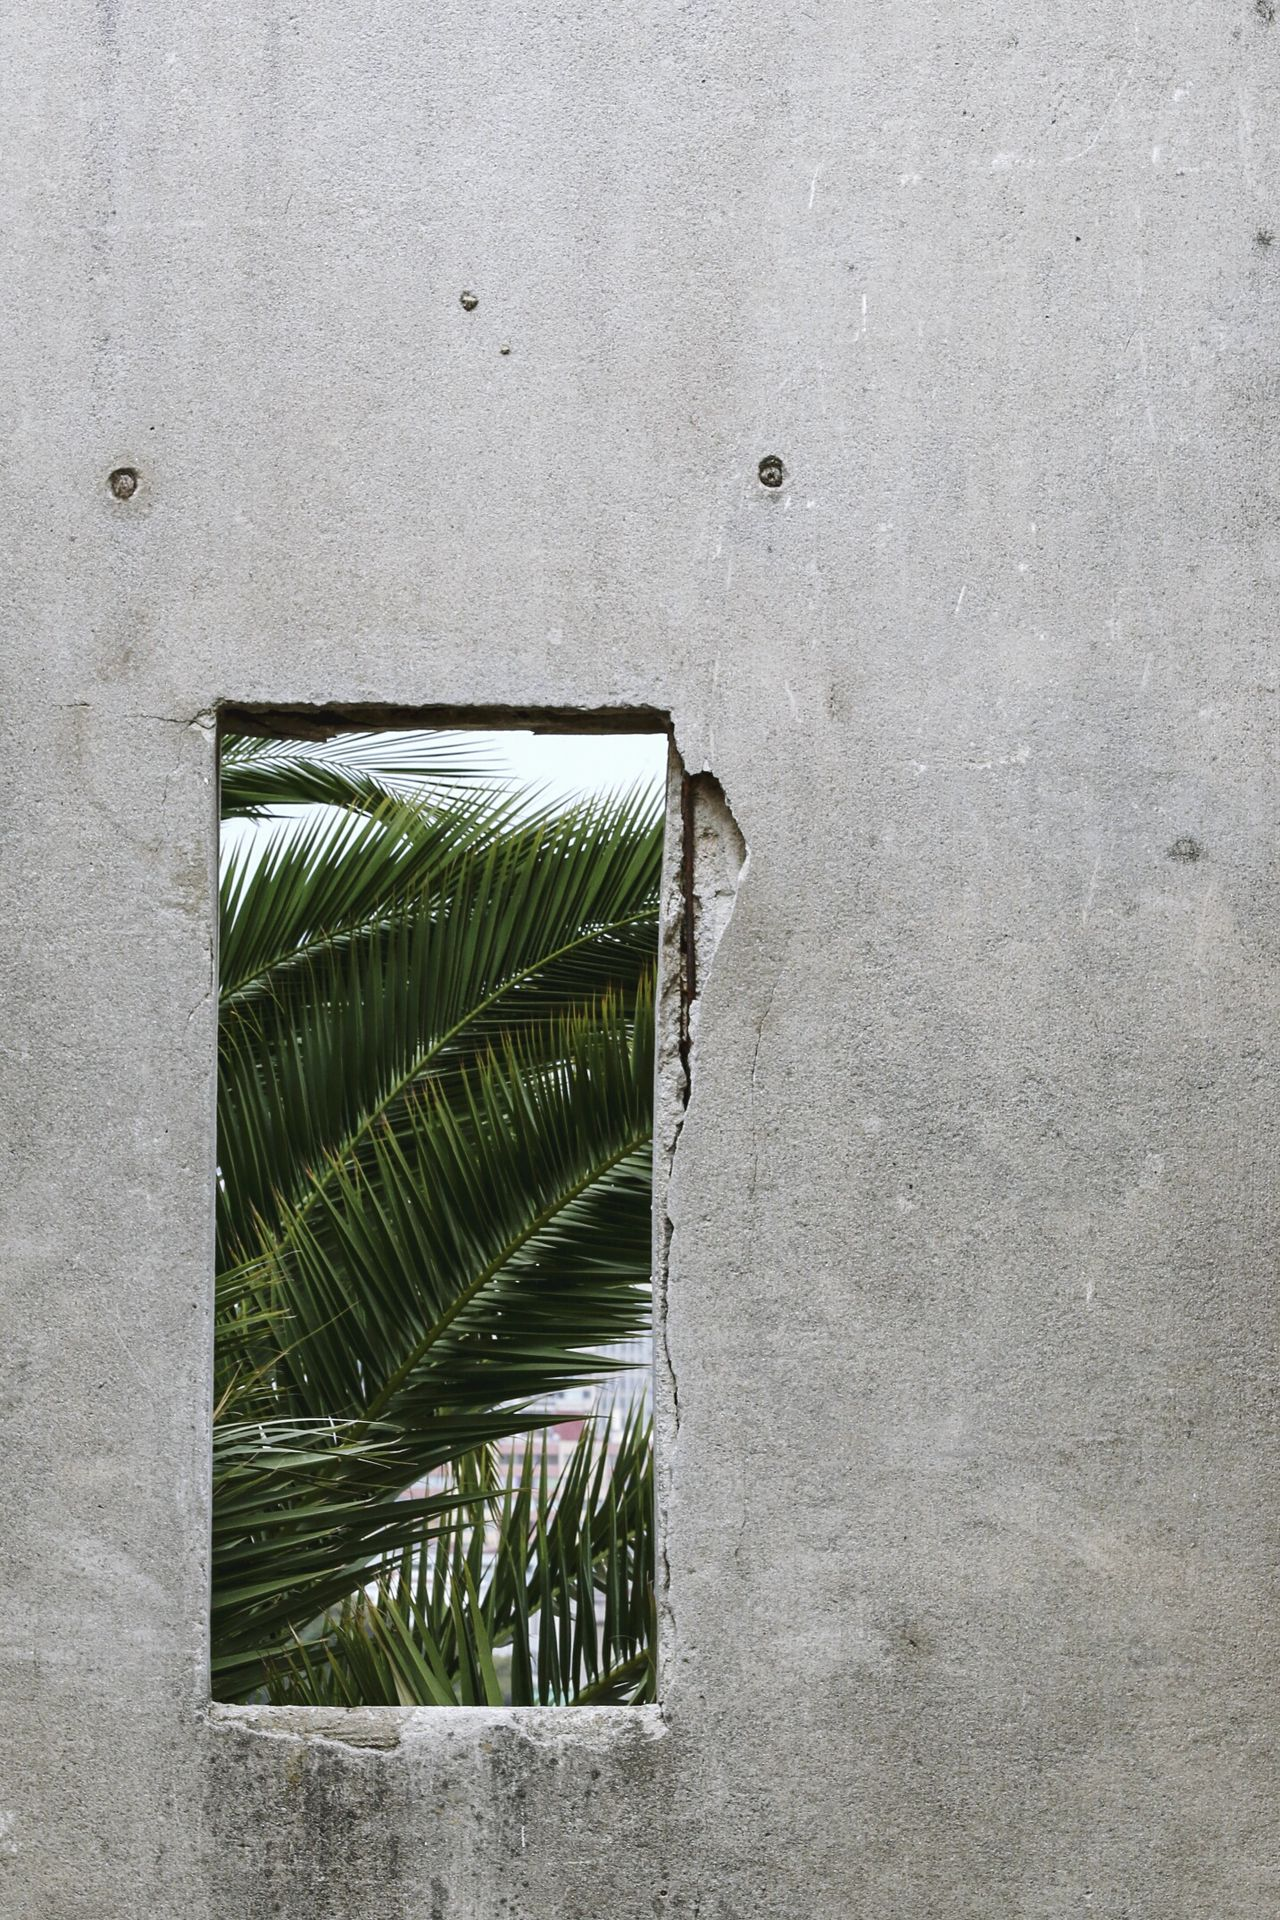 no people Architecture day close-up concrete concrete wall Palm tree Palm Leaf palm trees green leaves greenery Green Green Green! Green color